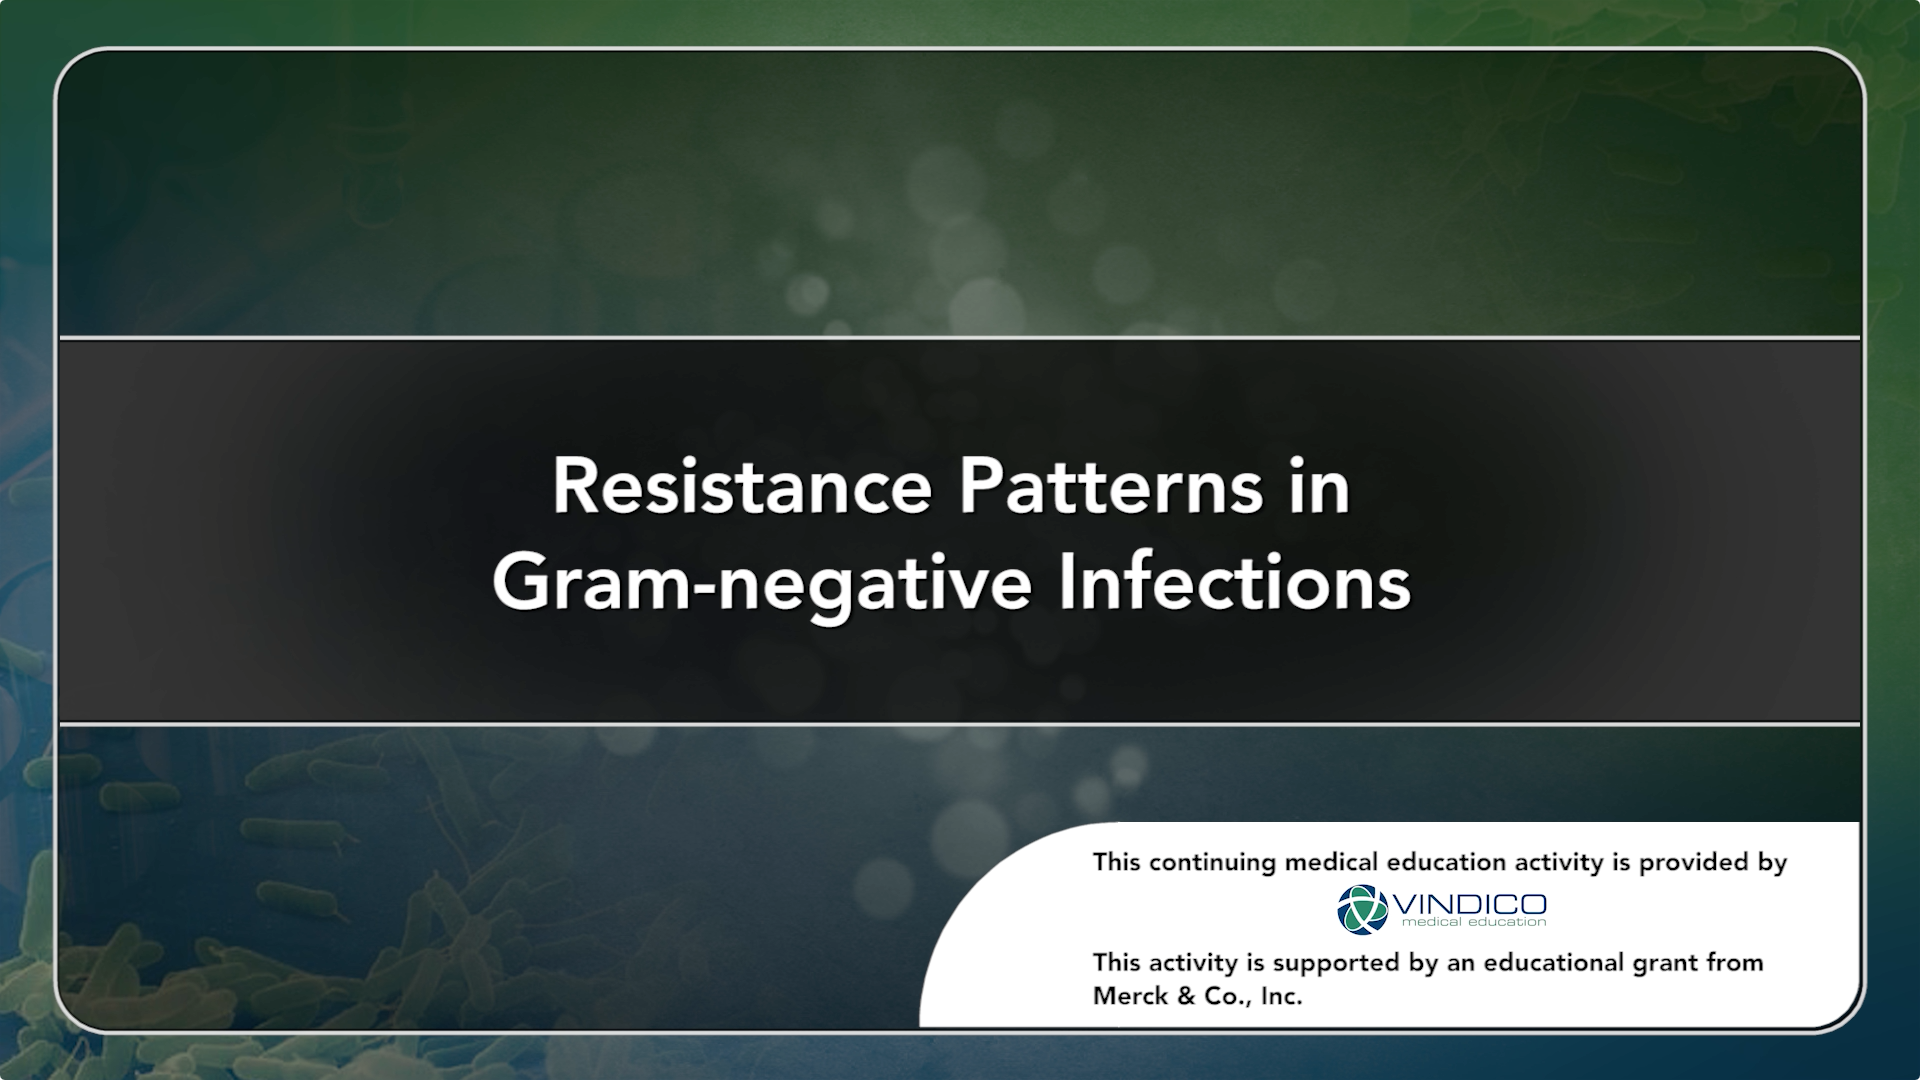 Resistance Patterns in Gram-negative Infections